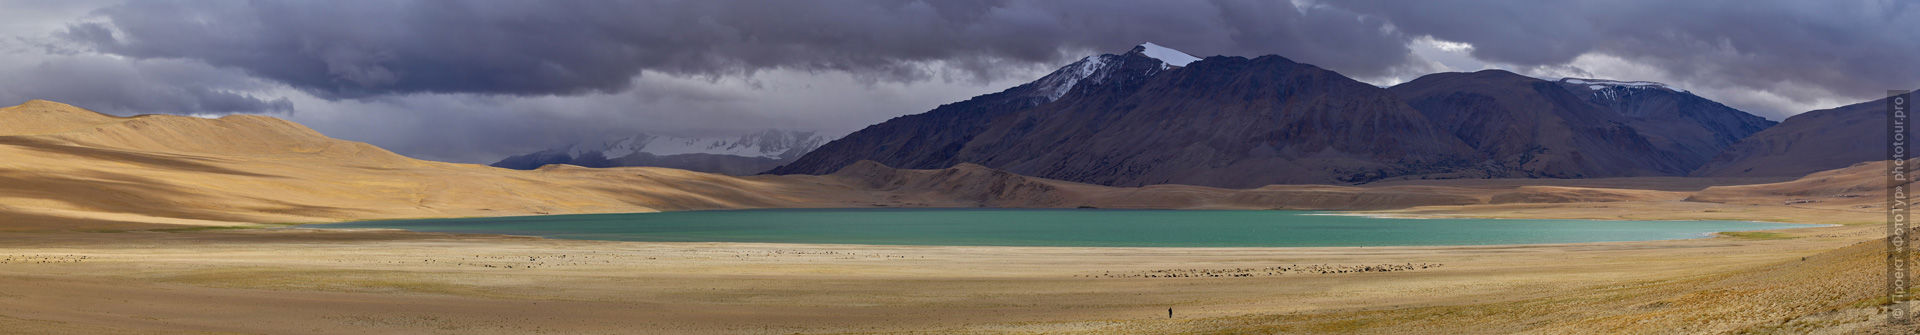 Chiagar Tso Lake. Photo tour / tour Tibet of Lake-1: Pangong, Tso Moriri, Tso Kar, Tso Chiagar, Dance of Tsam on Lake Pangong, 19.06. - 28.06.2021.